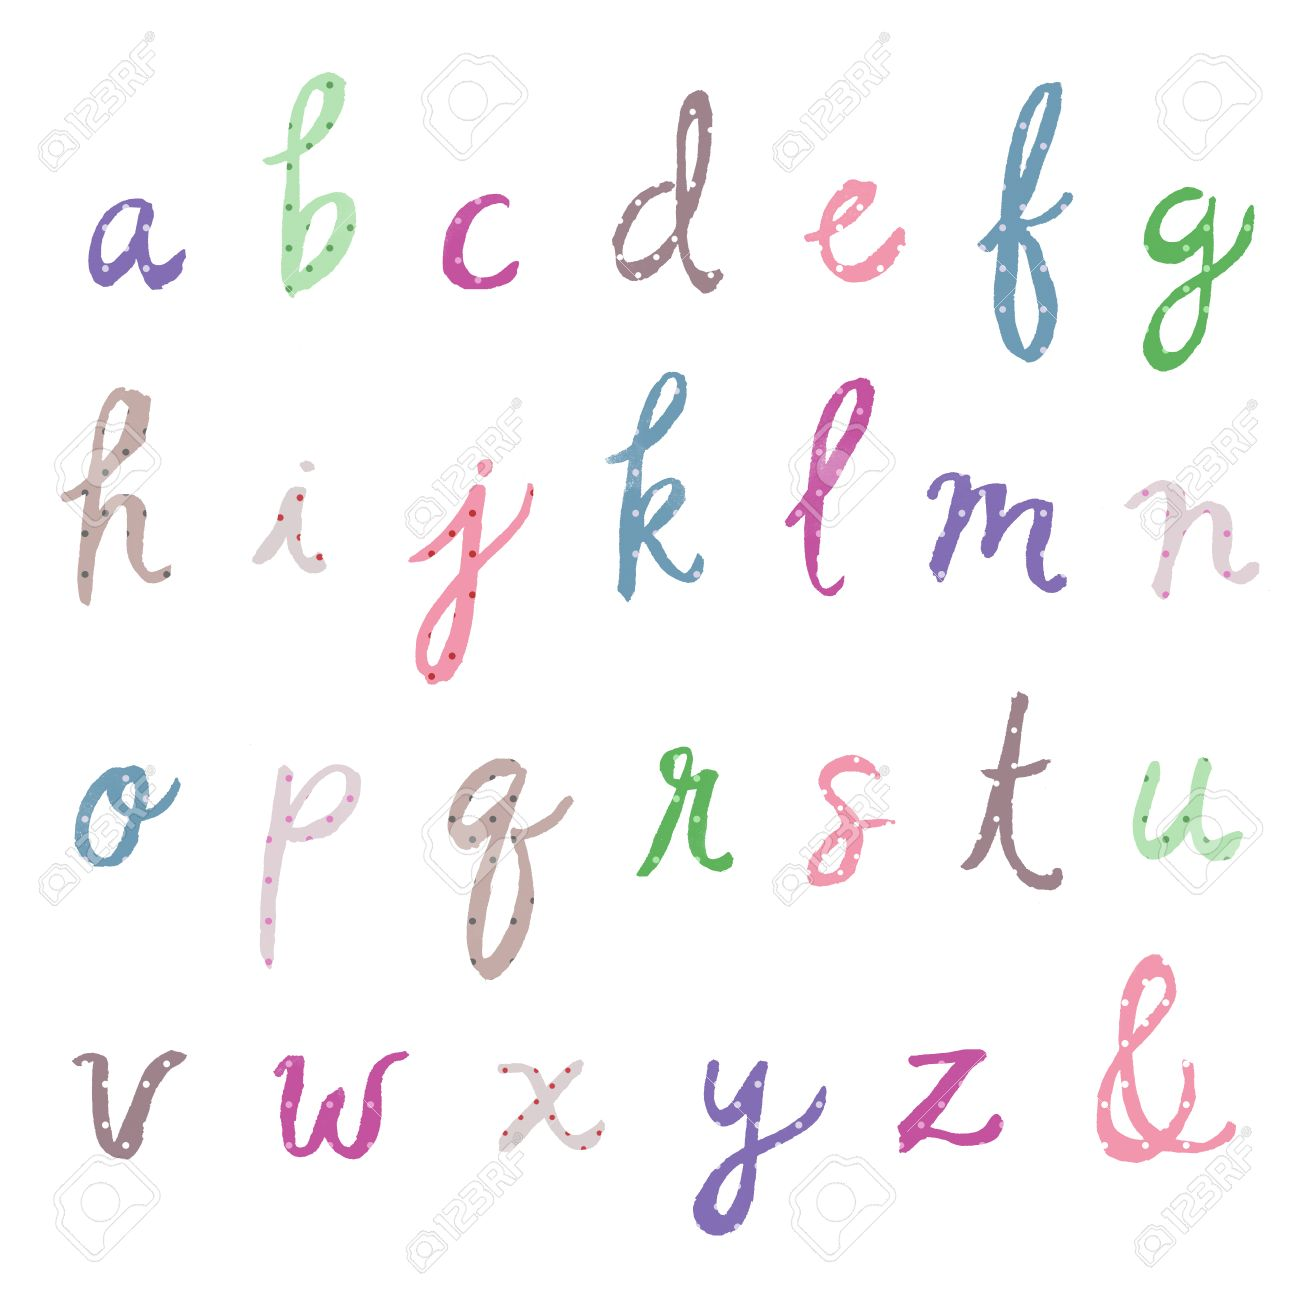 How to scrapbook letters - Digital Scrapbook Alphabet Letters Colorful Abcs Painted Cursive Alphabet With Polka Dots Stock Photo